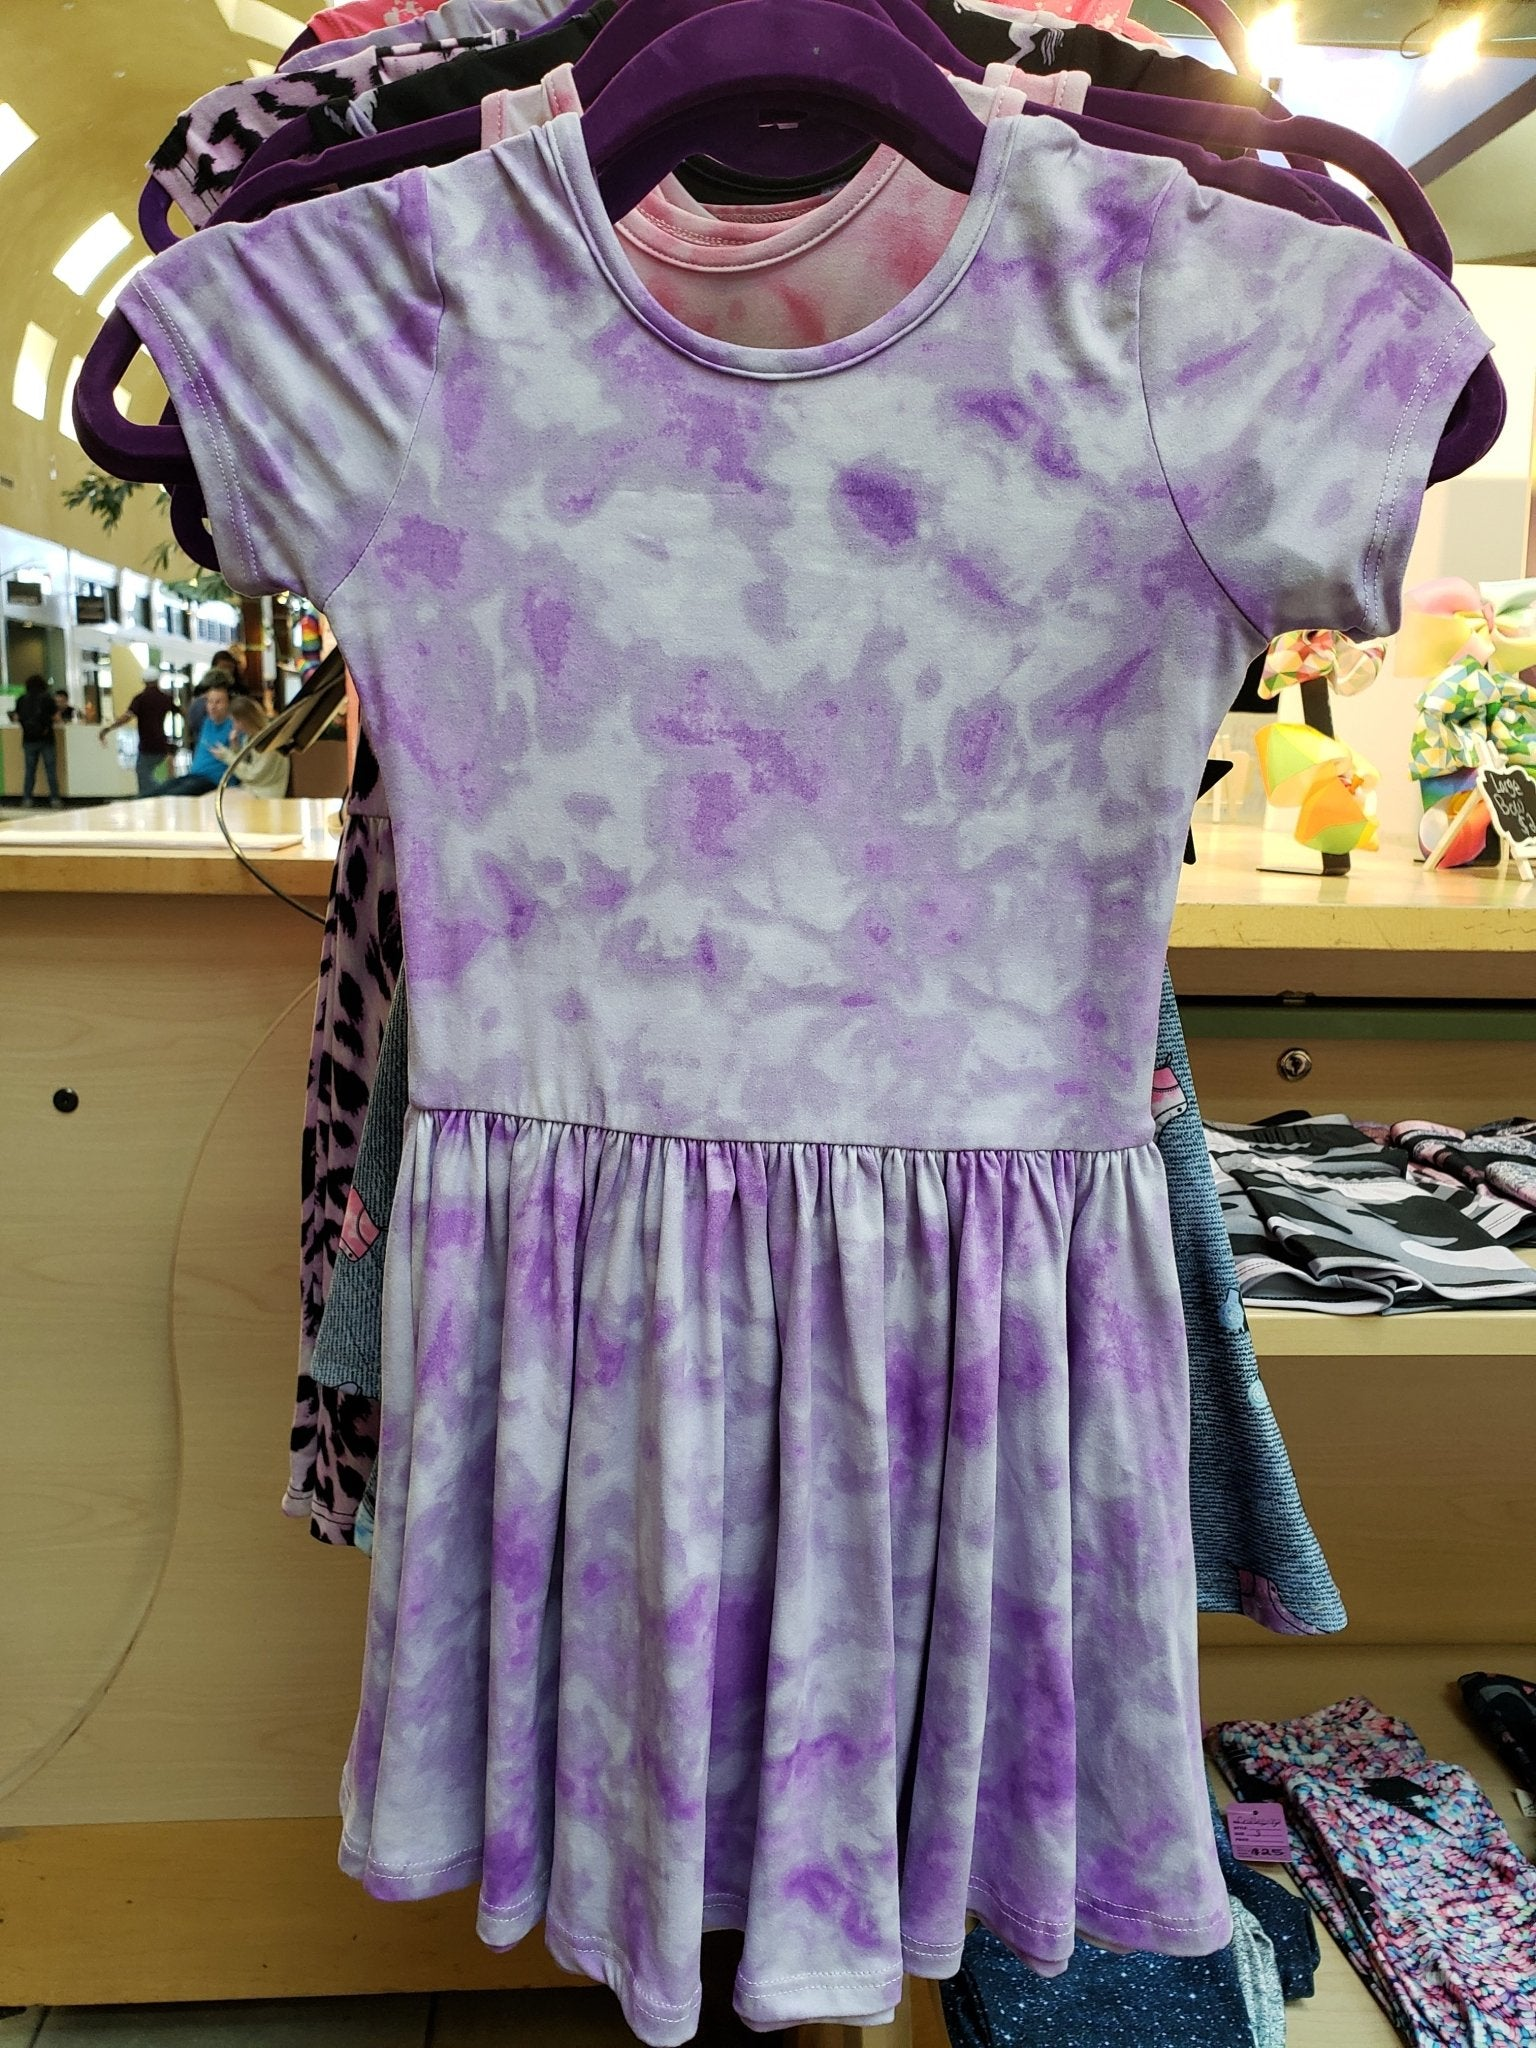 Purple/White Tie Dye Dress - LilChic BabyBug Boutique